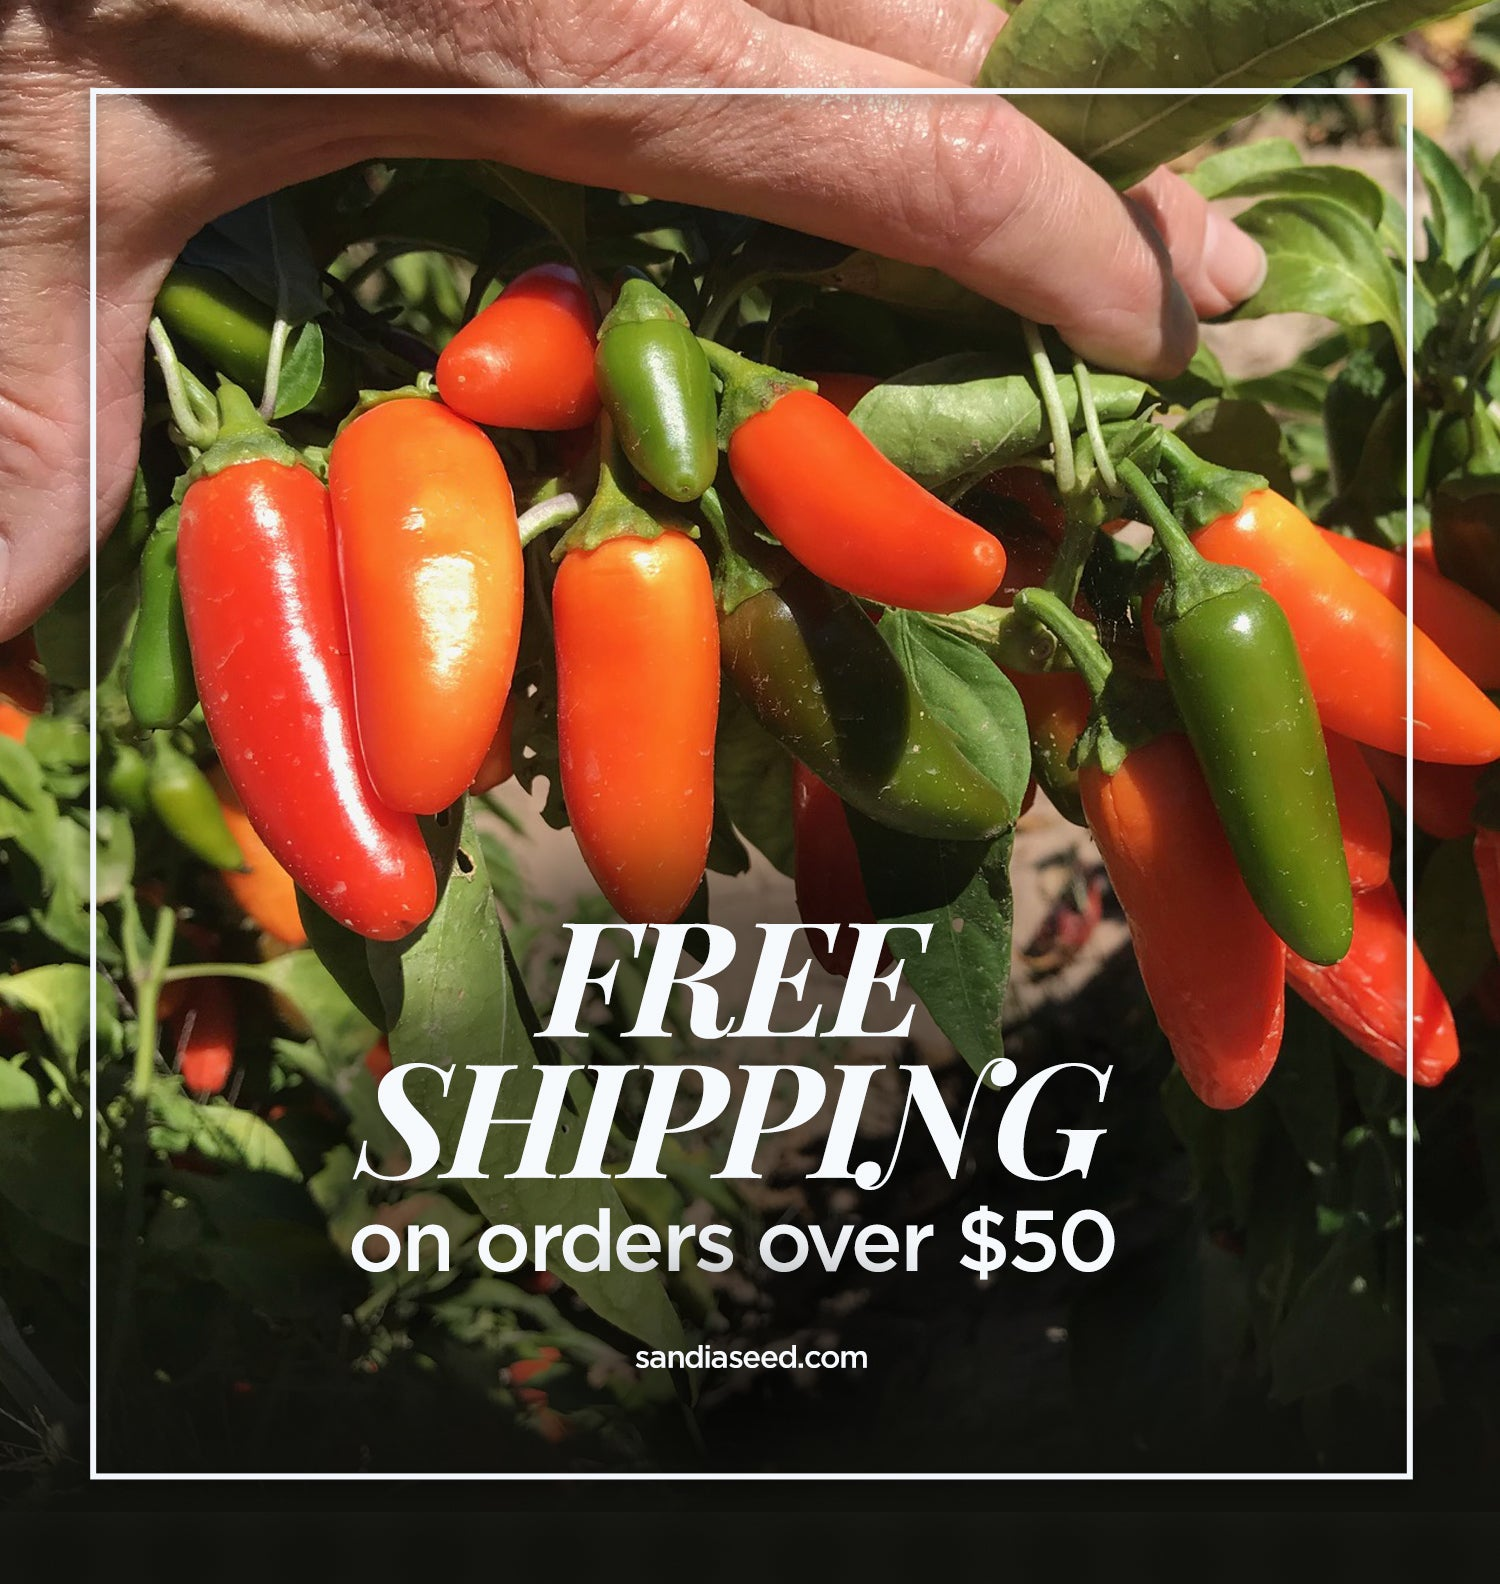 FREE SHIPPING SEEDS from Sandiaseed.com